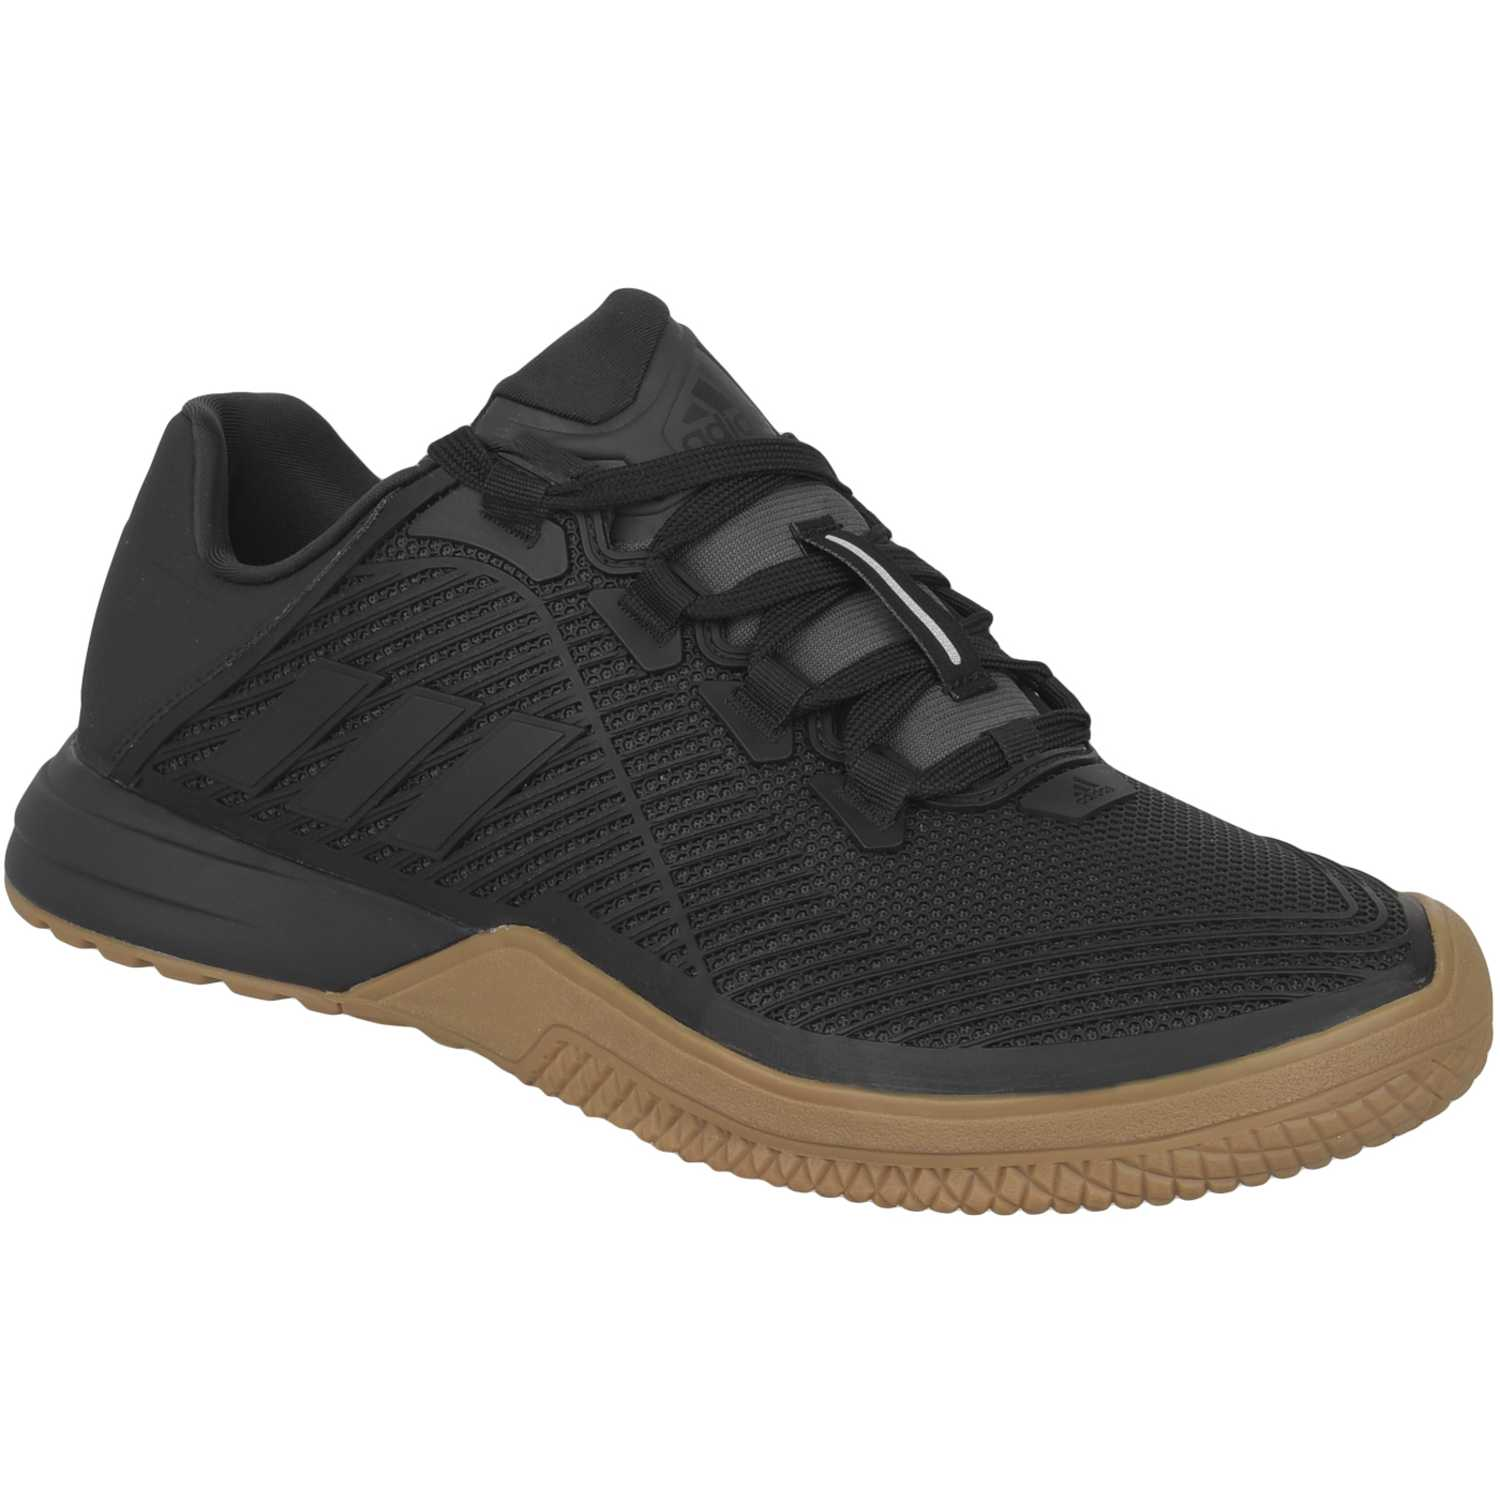 official photos ee748 2d1f3 Zapatilla de Hombre Adidas Negro   marrón crazypower tr m